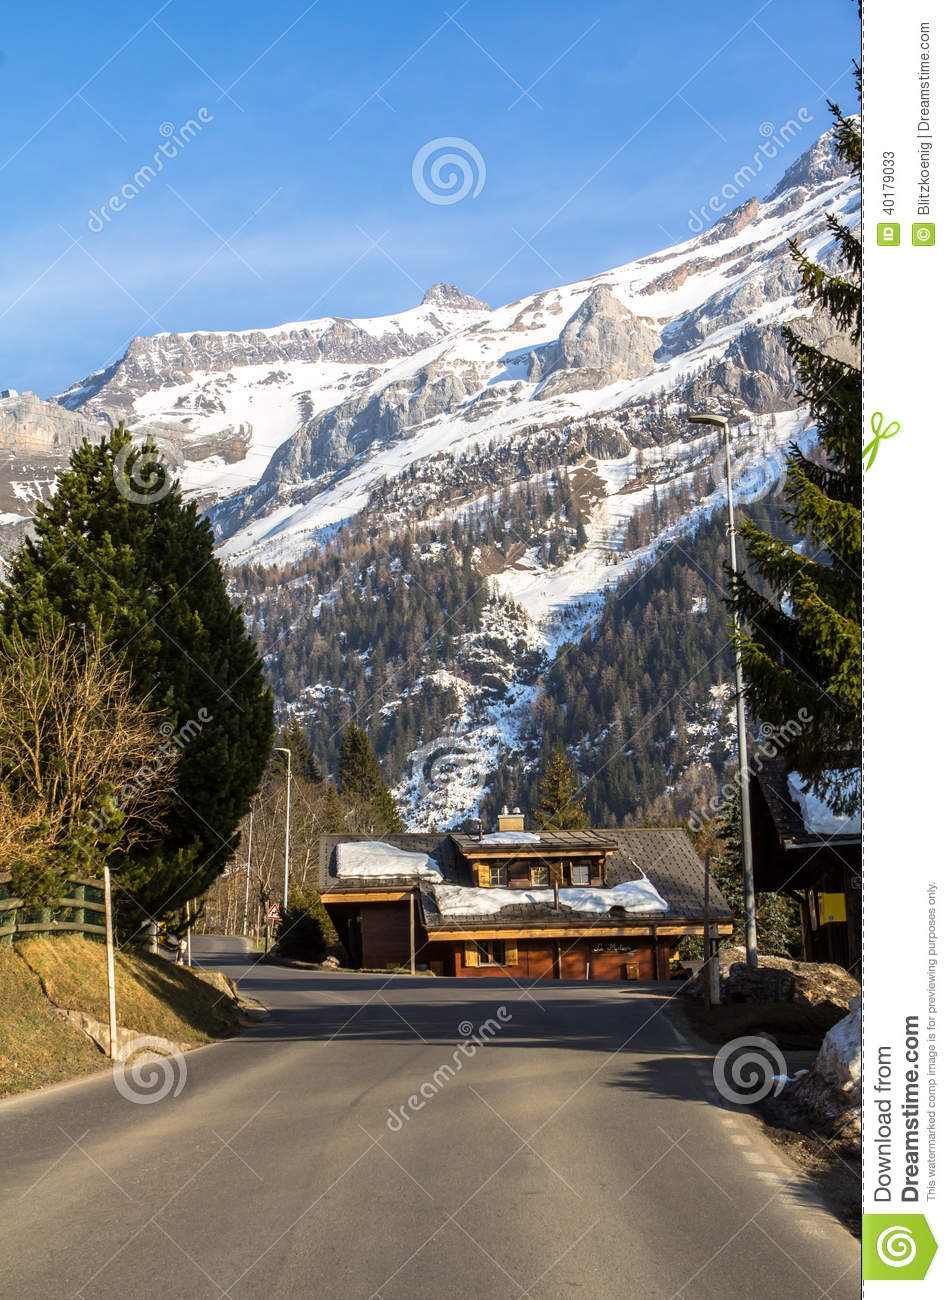 Home Time Road Roblox Id: Road In Alps Royalty-Free Stock Photo